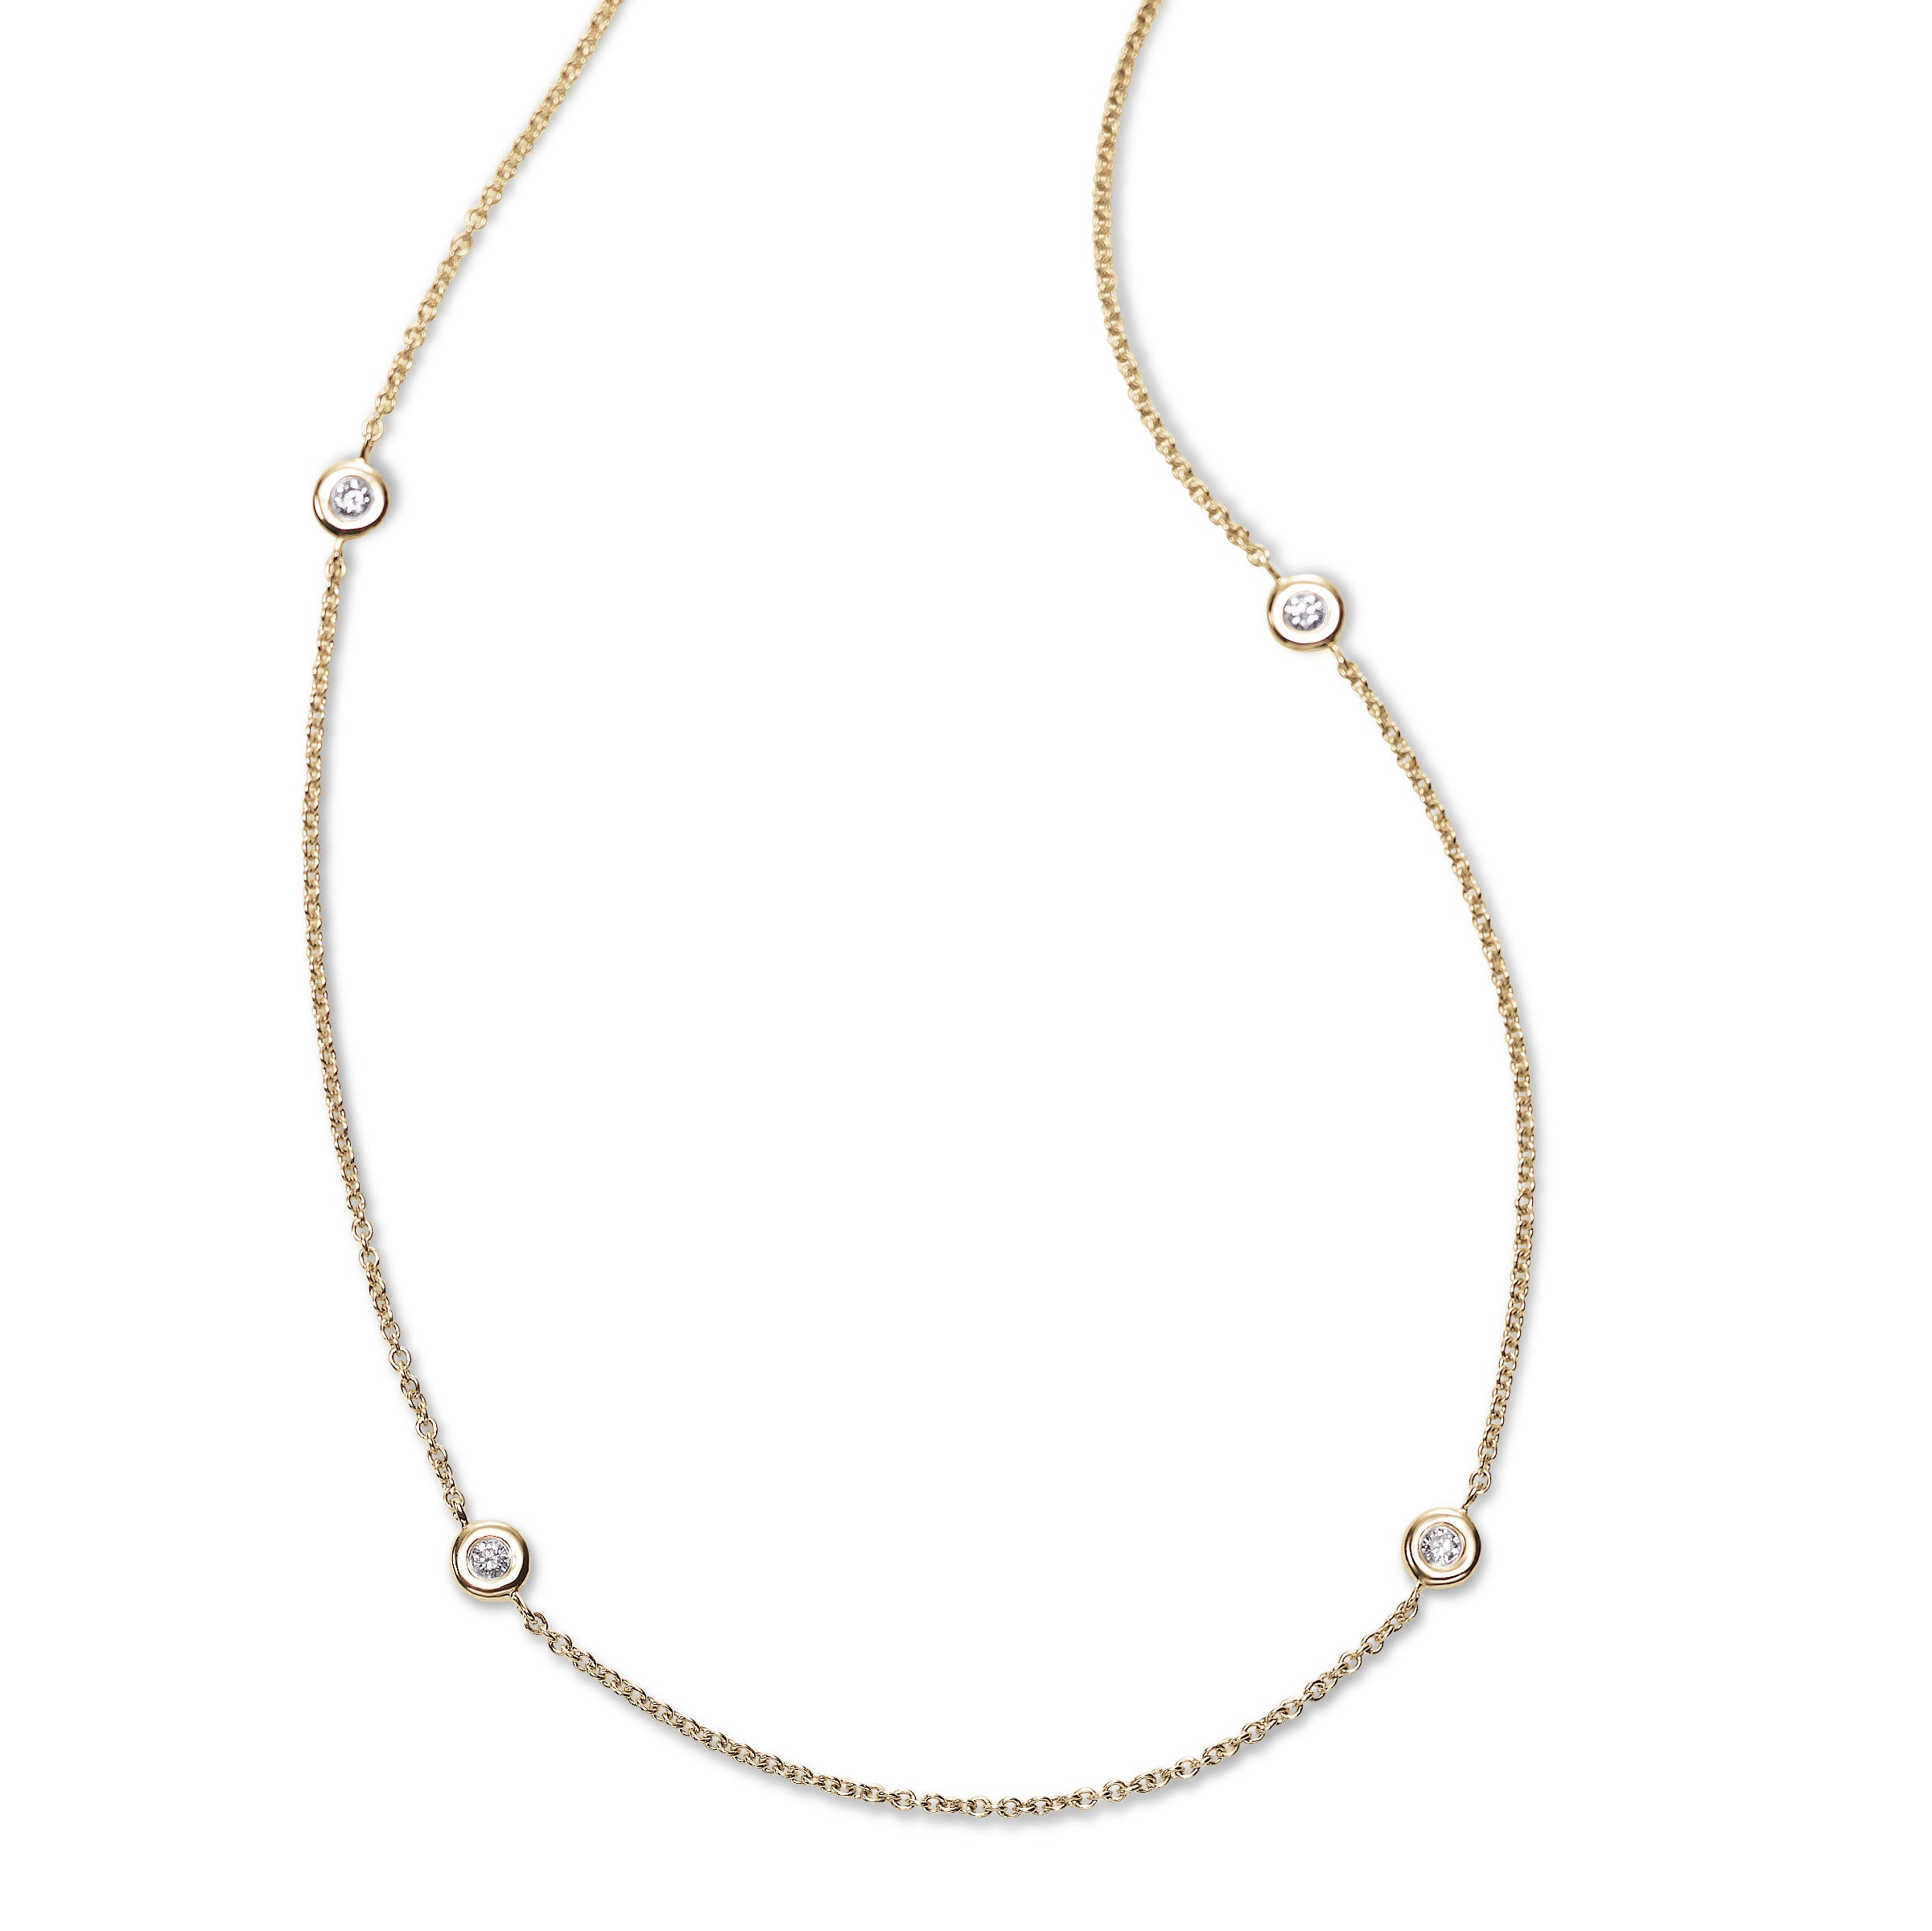 Bezel Set Diamond Necklace, 18 Inches, 14K Yellow Gold